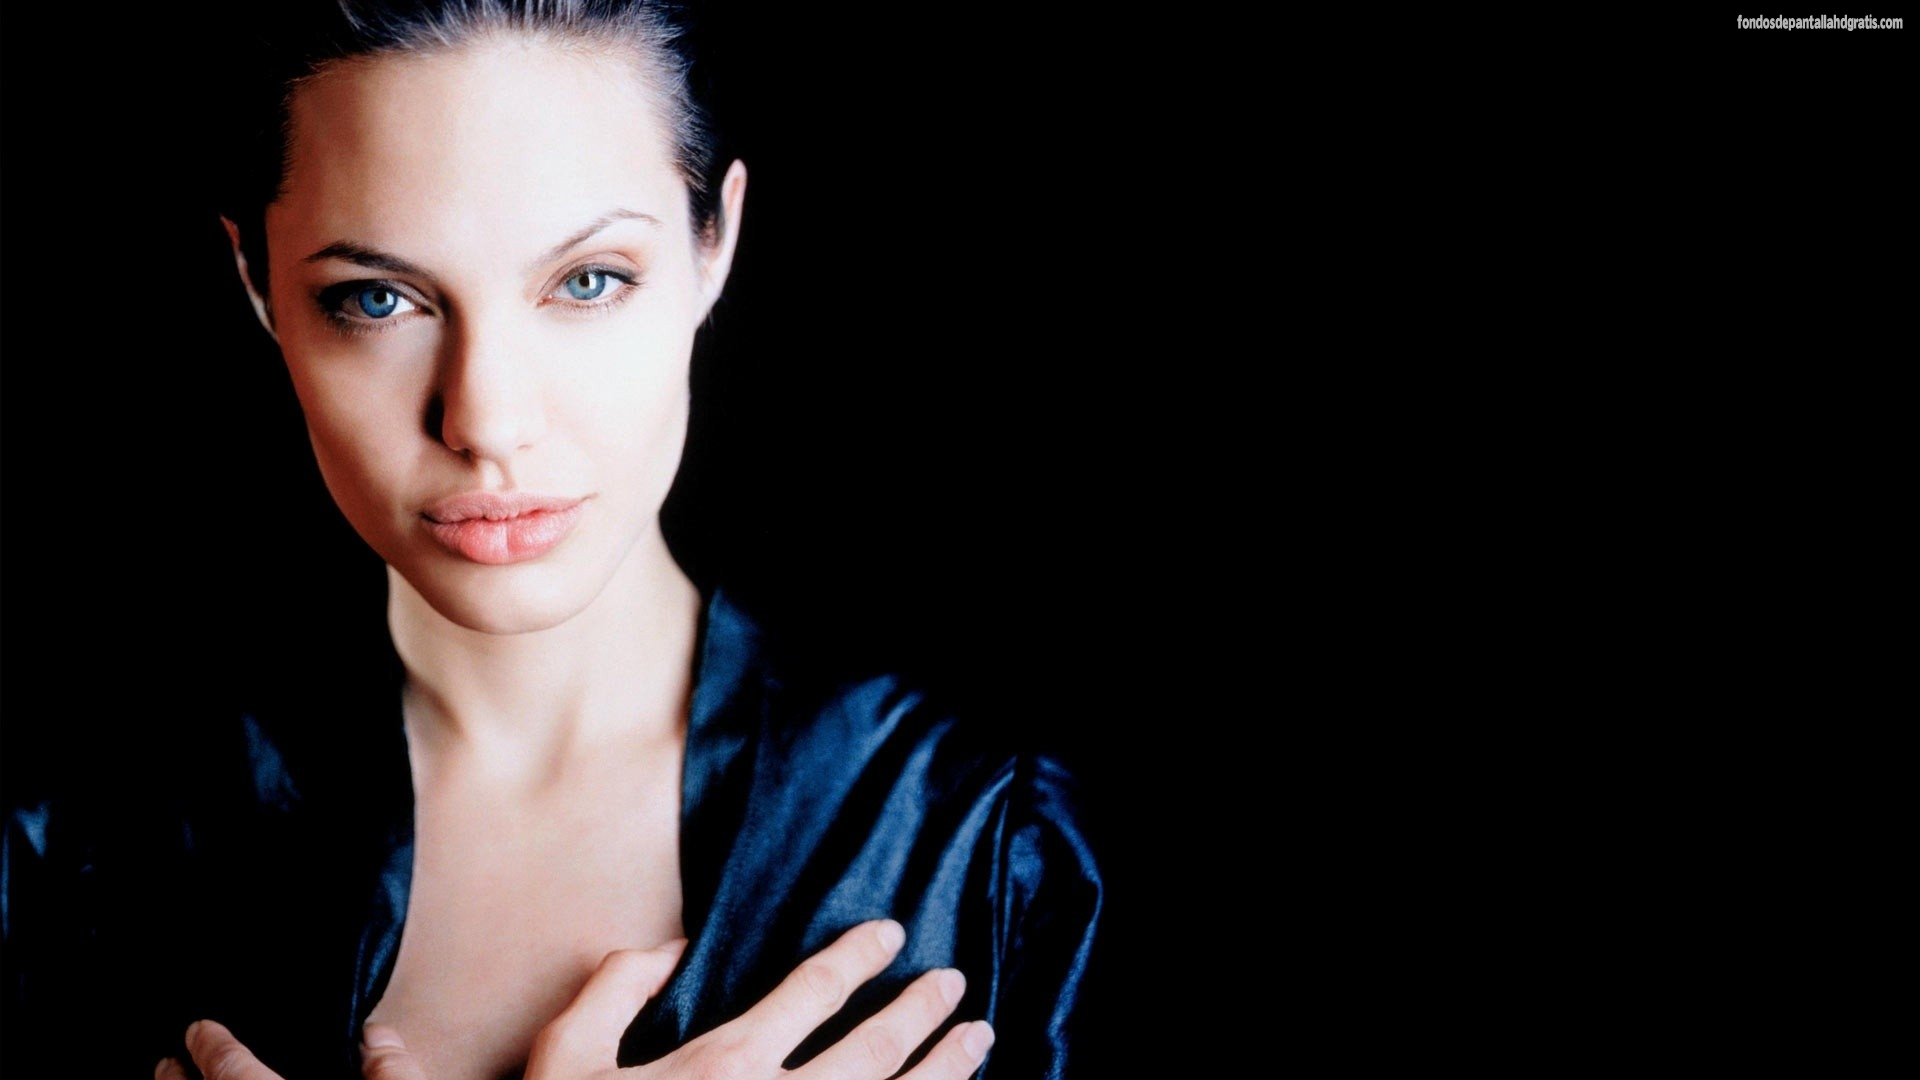 Descargar imagen angelina jolie wallpapers celebrity backgrounds hd 1920x1080